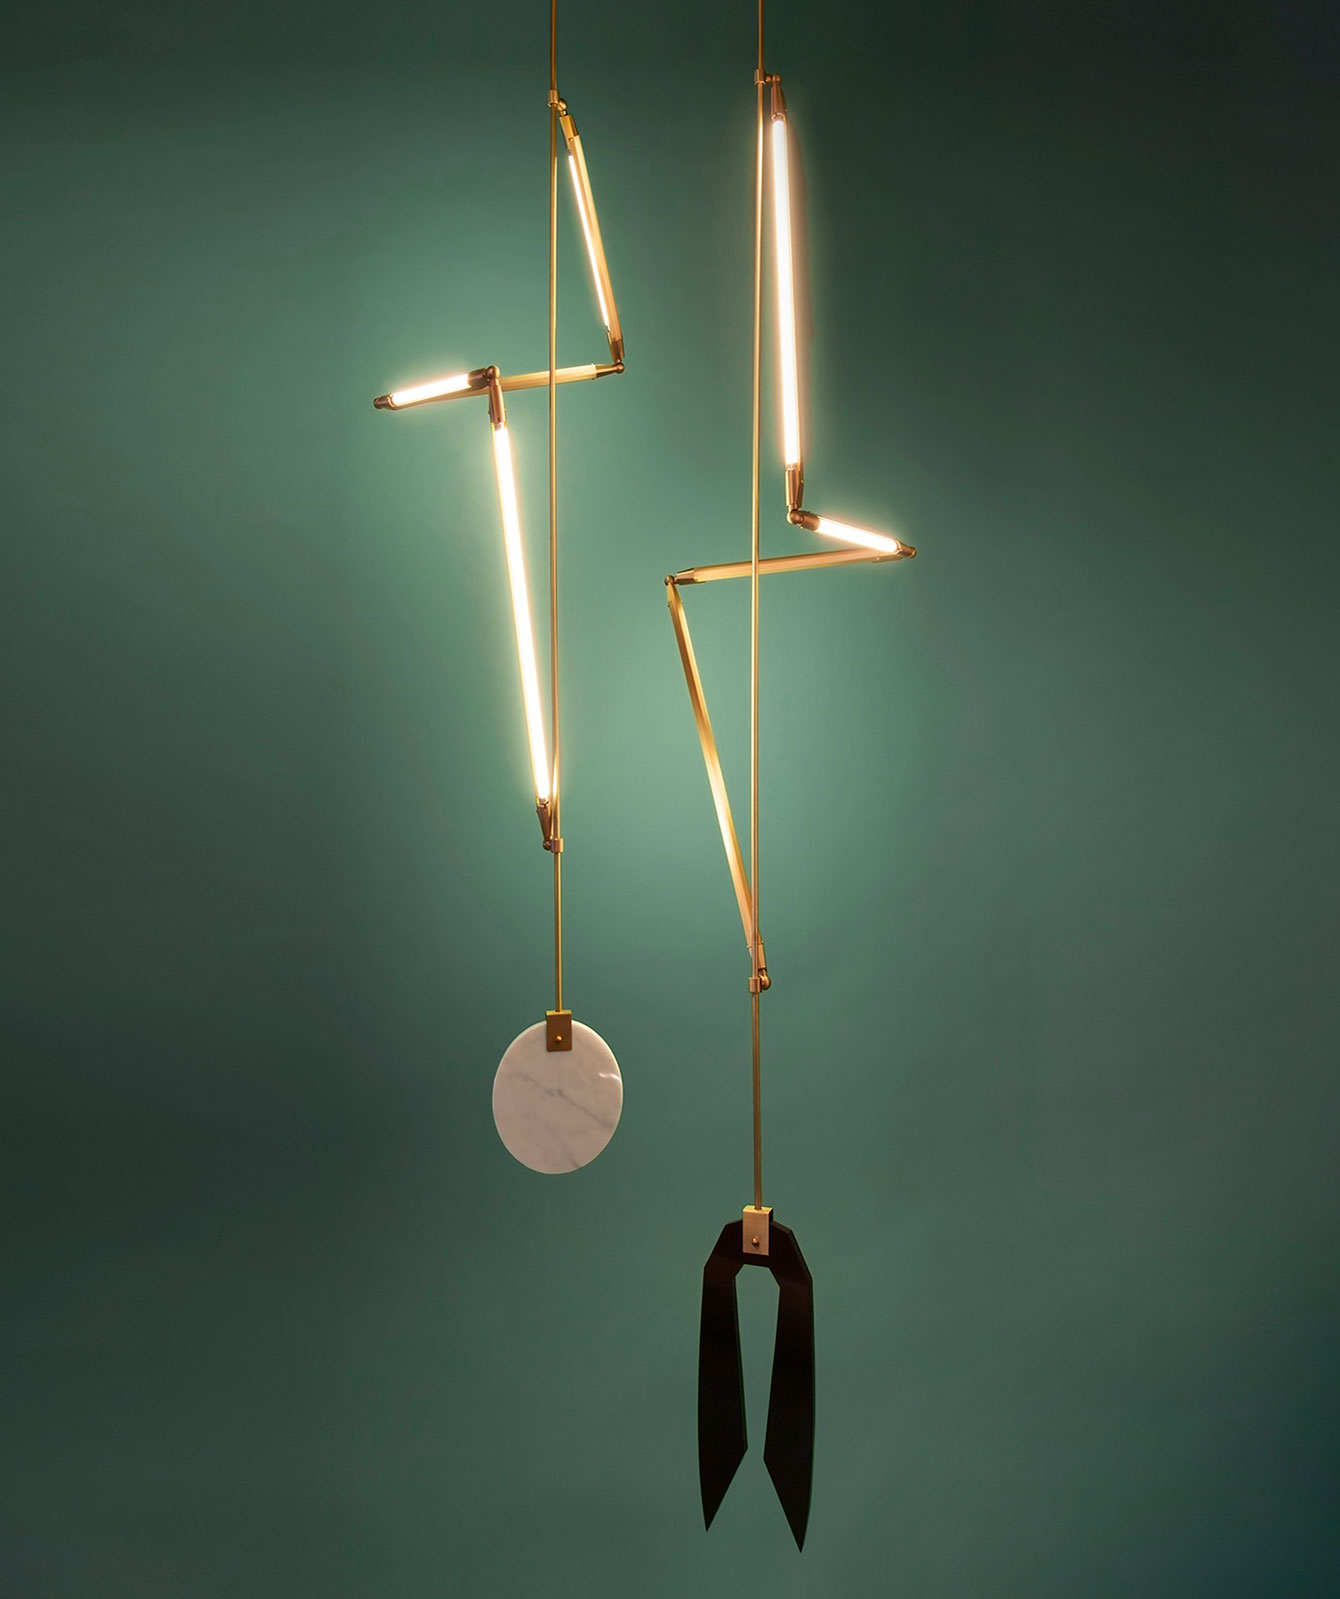 Sculptural Geometric Lighting by Bec Brittain.